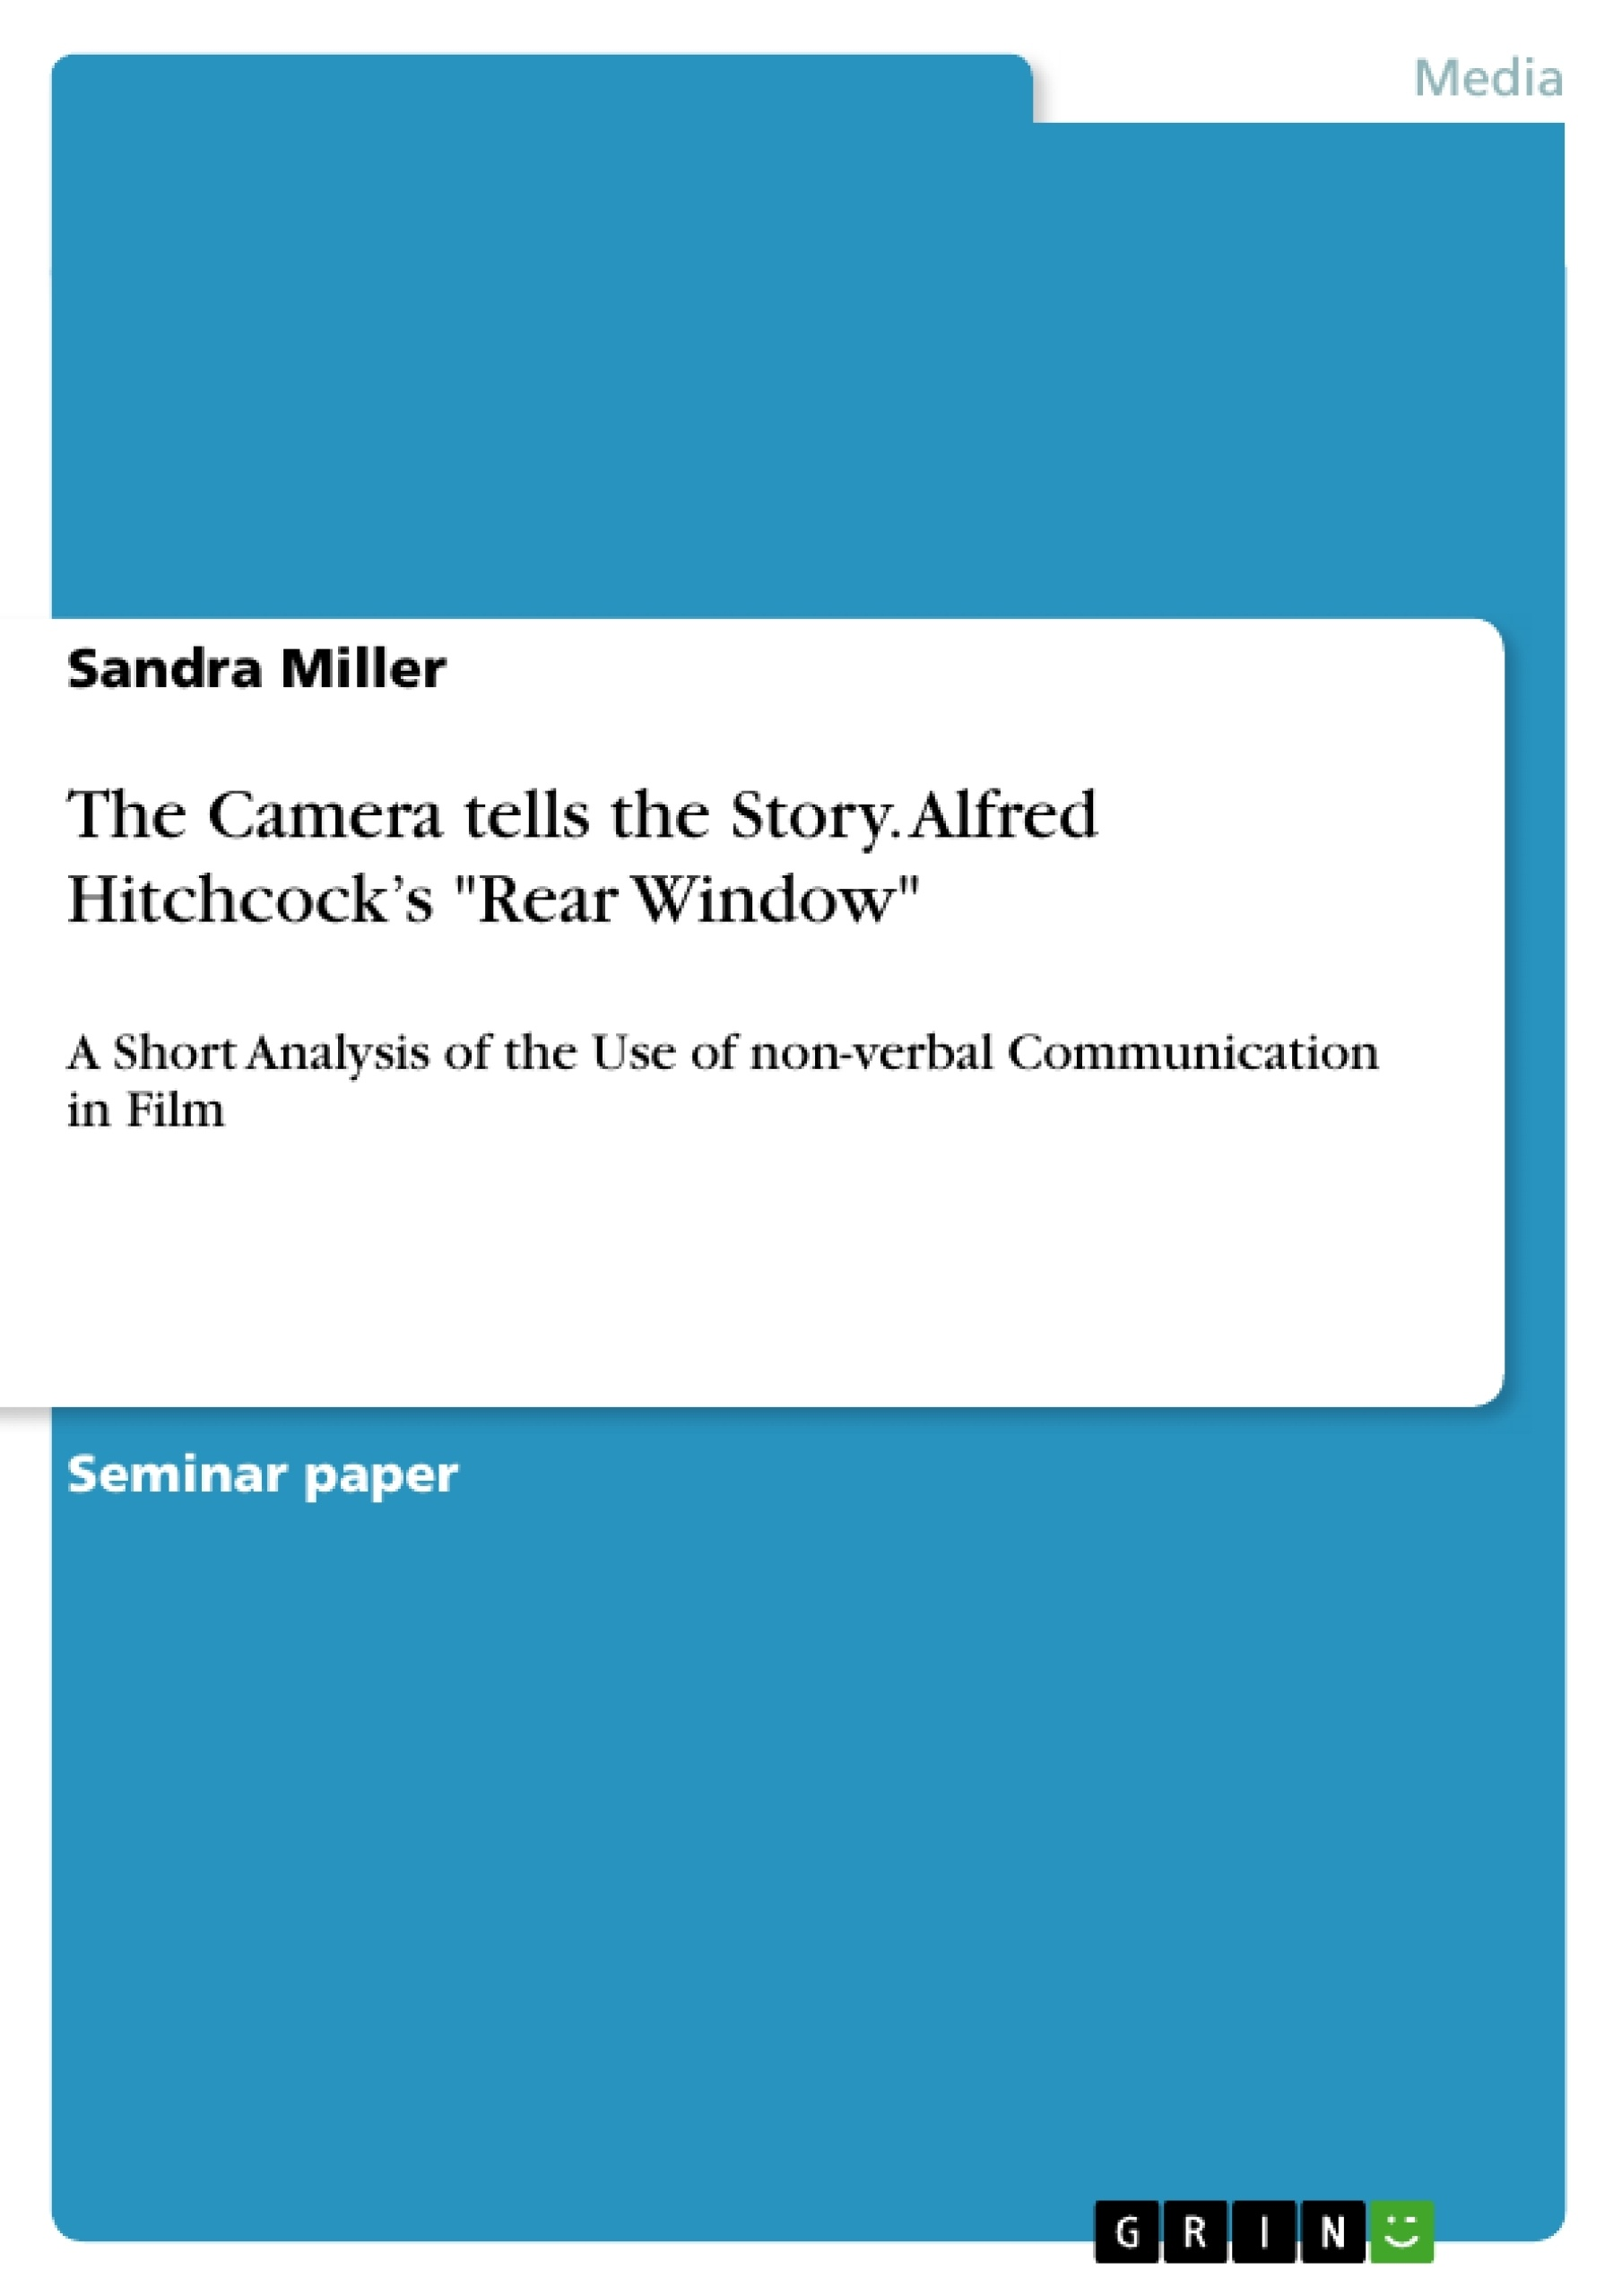 the camera tells the story alfred hitchcock s rear window alfred hitchcock s rear window publish your master s thesis bachelor s thesis essay or term paper